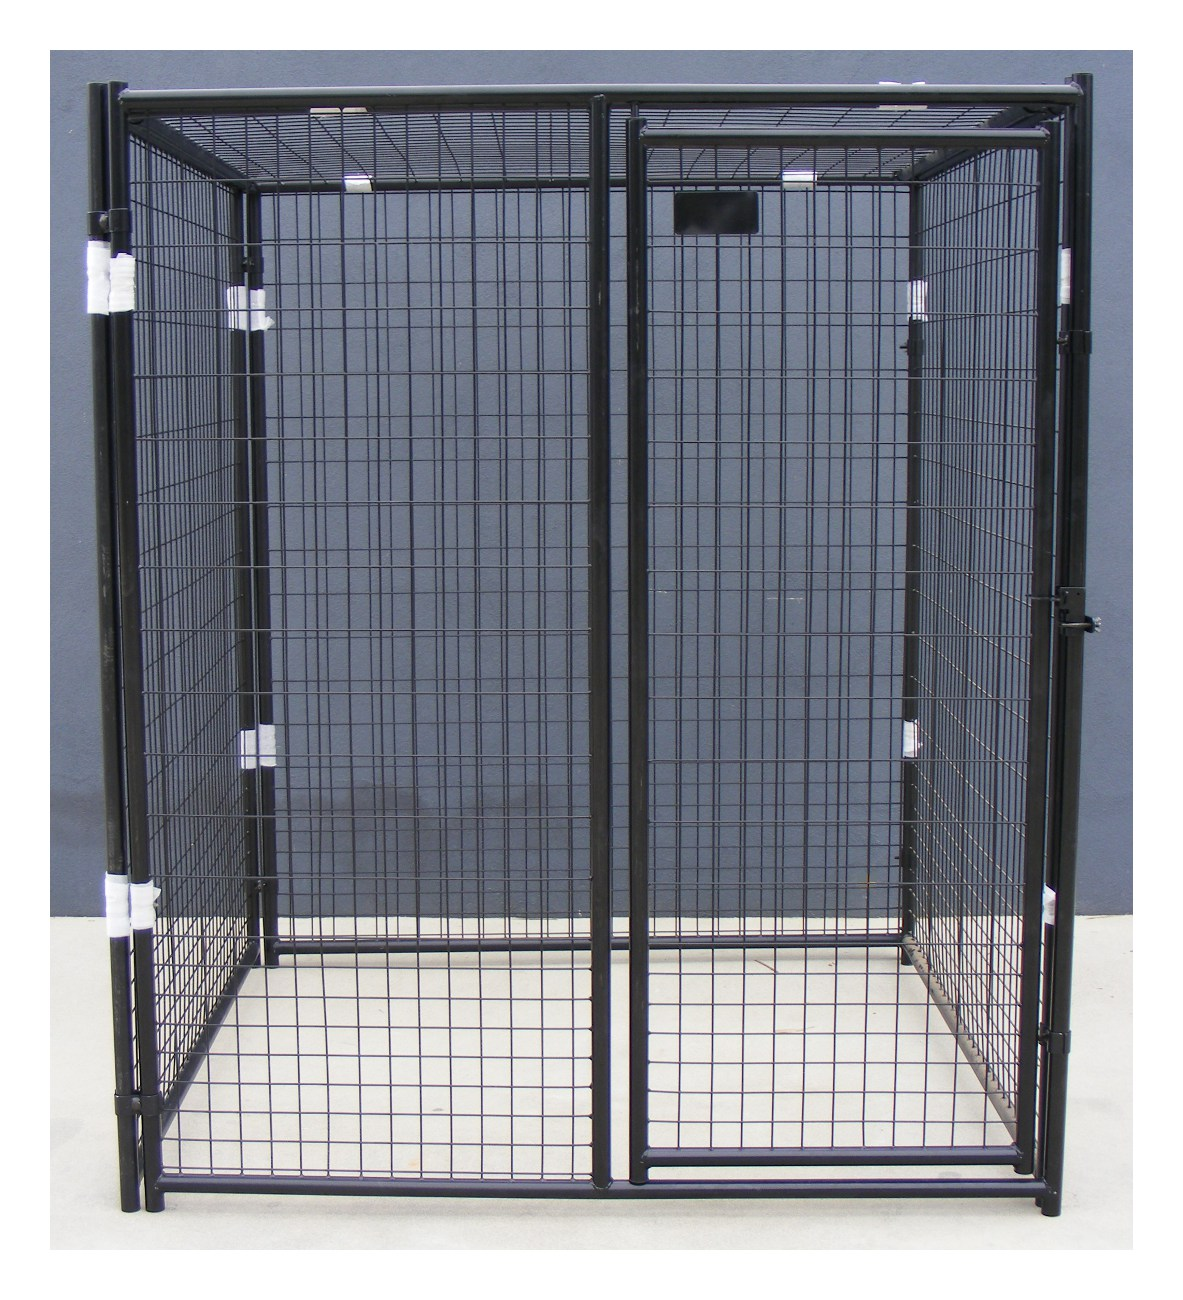 Pet Enclosure Small 1500mmW x 1500mmL x 1800mmH (With Roof)